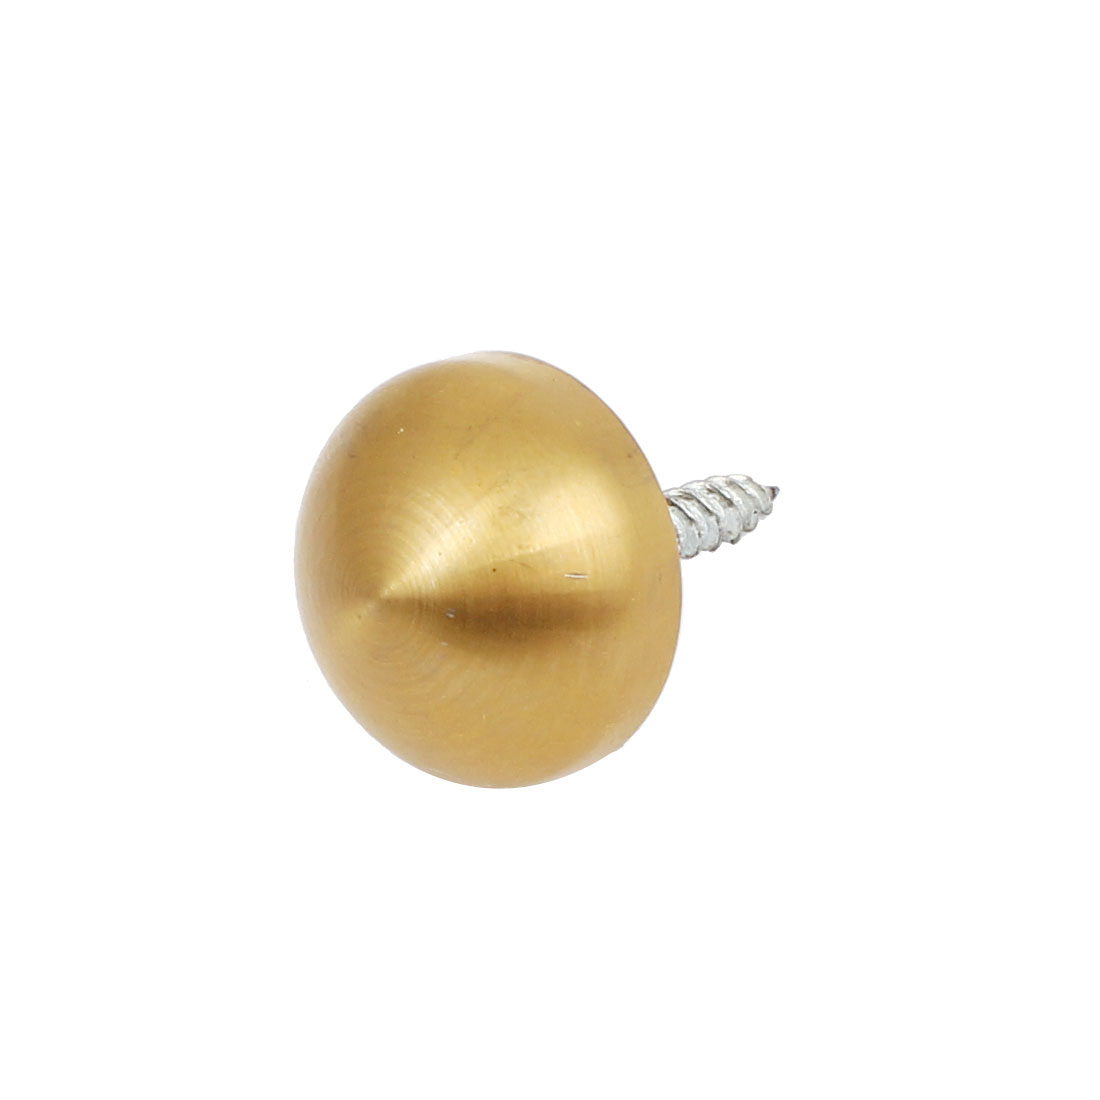 20mm Dia Cup Stainless Steel Hemispherical Decorative Mirror Nail Gold Tone